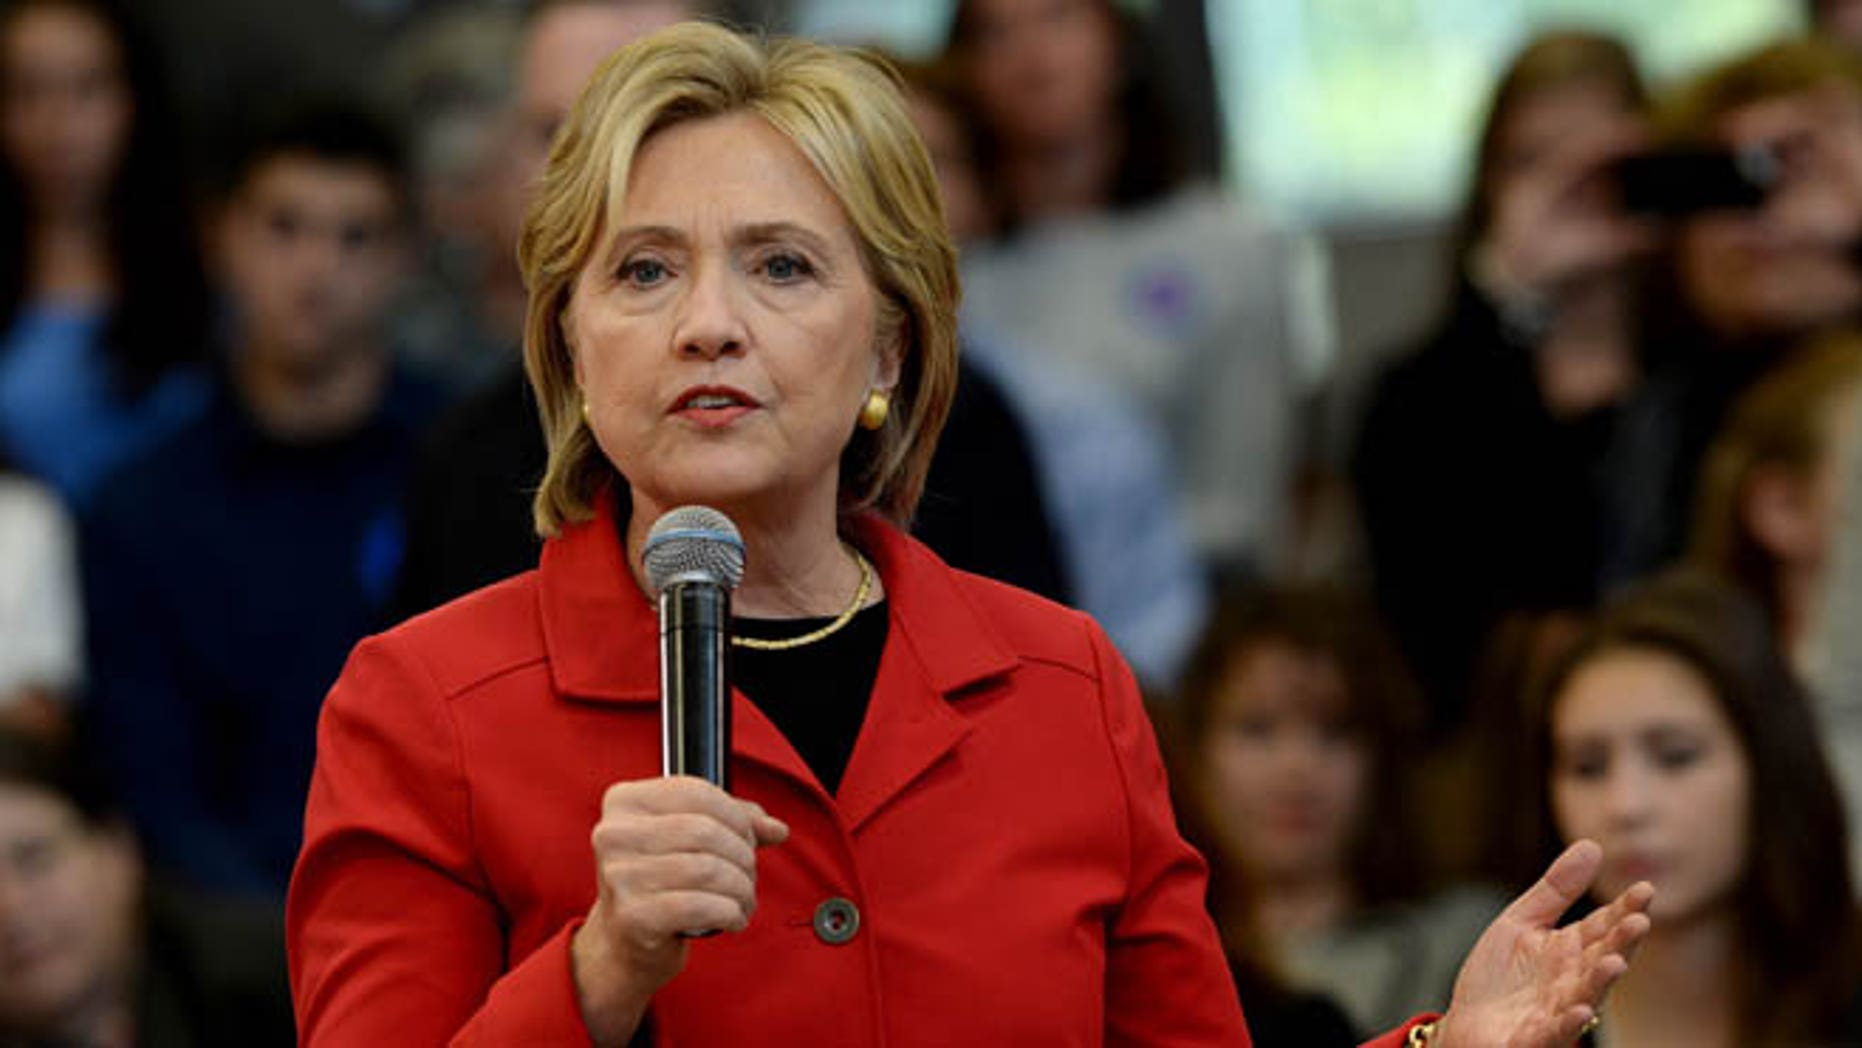 Democratic Presidential candidate Hillary Clinton speaks at a town hall event at Manchester Community College October 5, 2015 in Manchester, New Hampshire. (Photo by Darren McCollester/Getty Images)